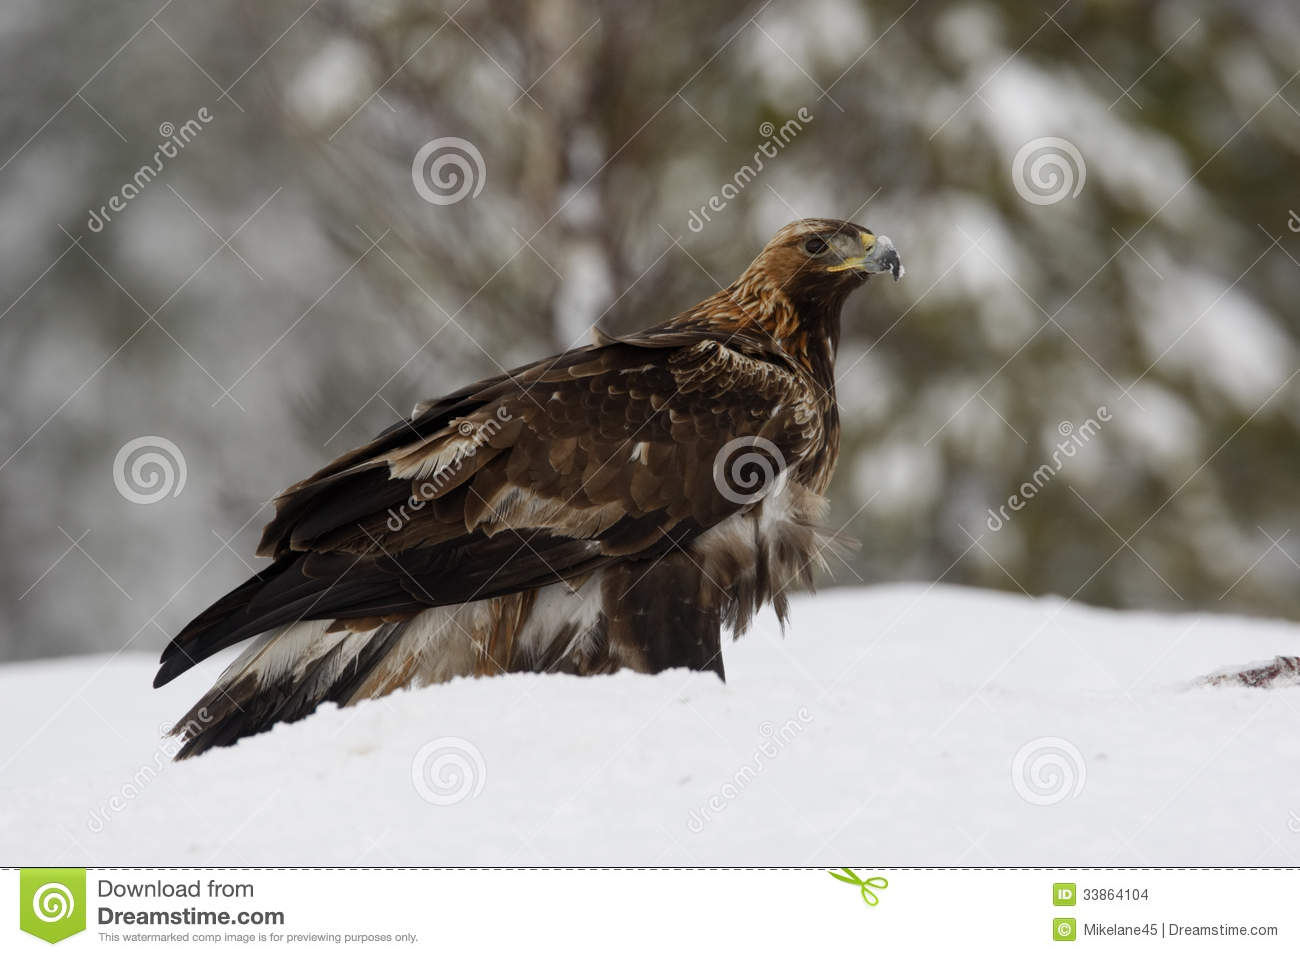 golden eagle jewish single men The silver eagle was the ensign of the roman legion and the symbol of its power the legatus was the officer in charge, and he would assign an aquilifer who was the soldier that would carry the aquila (eagle) into battle.